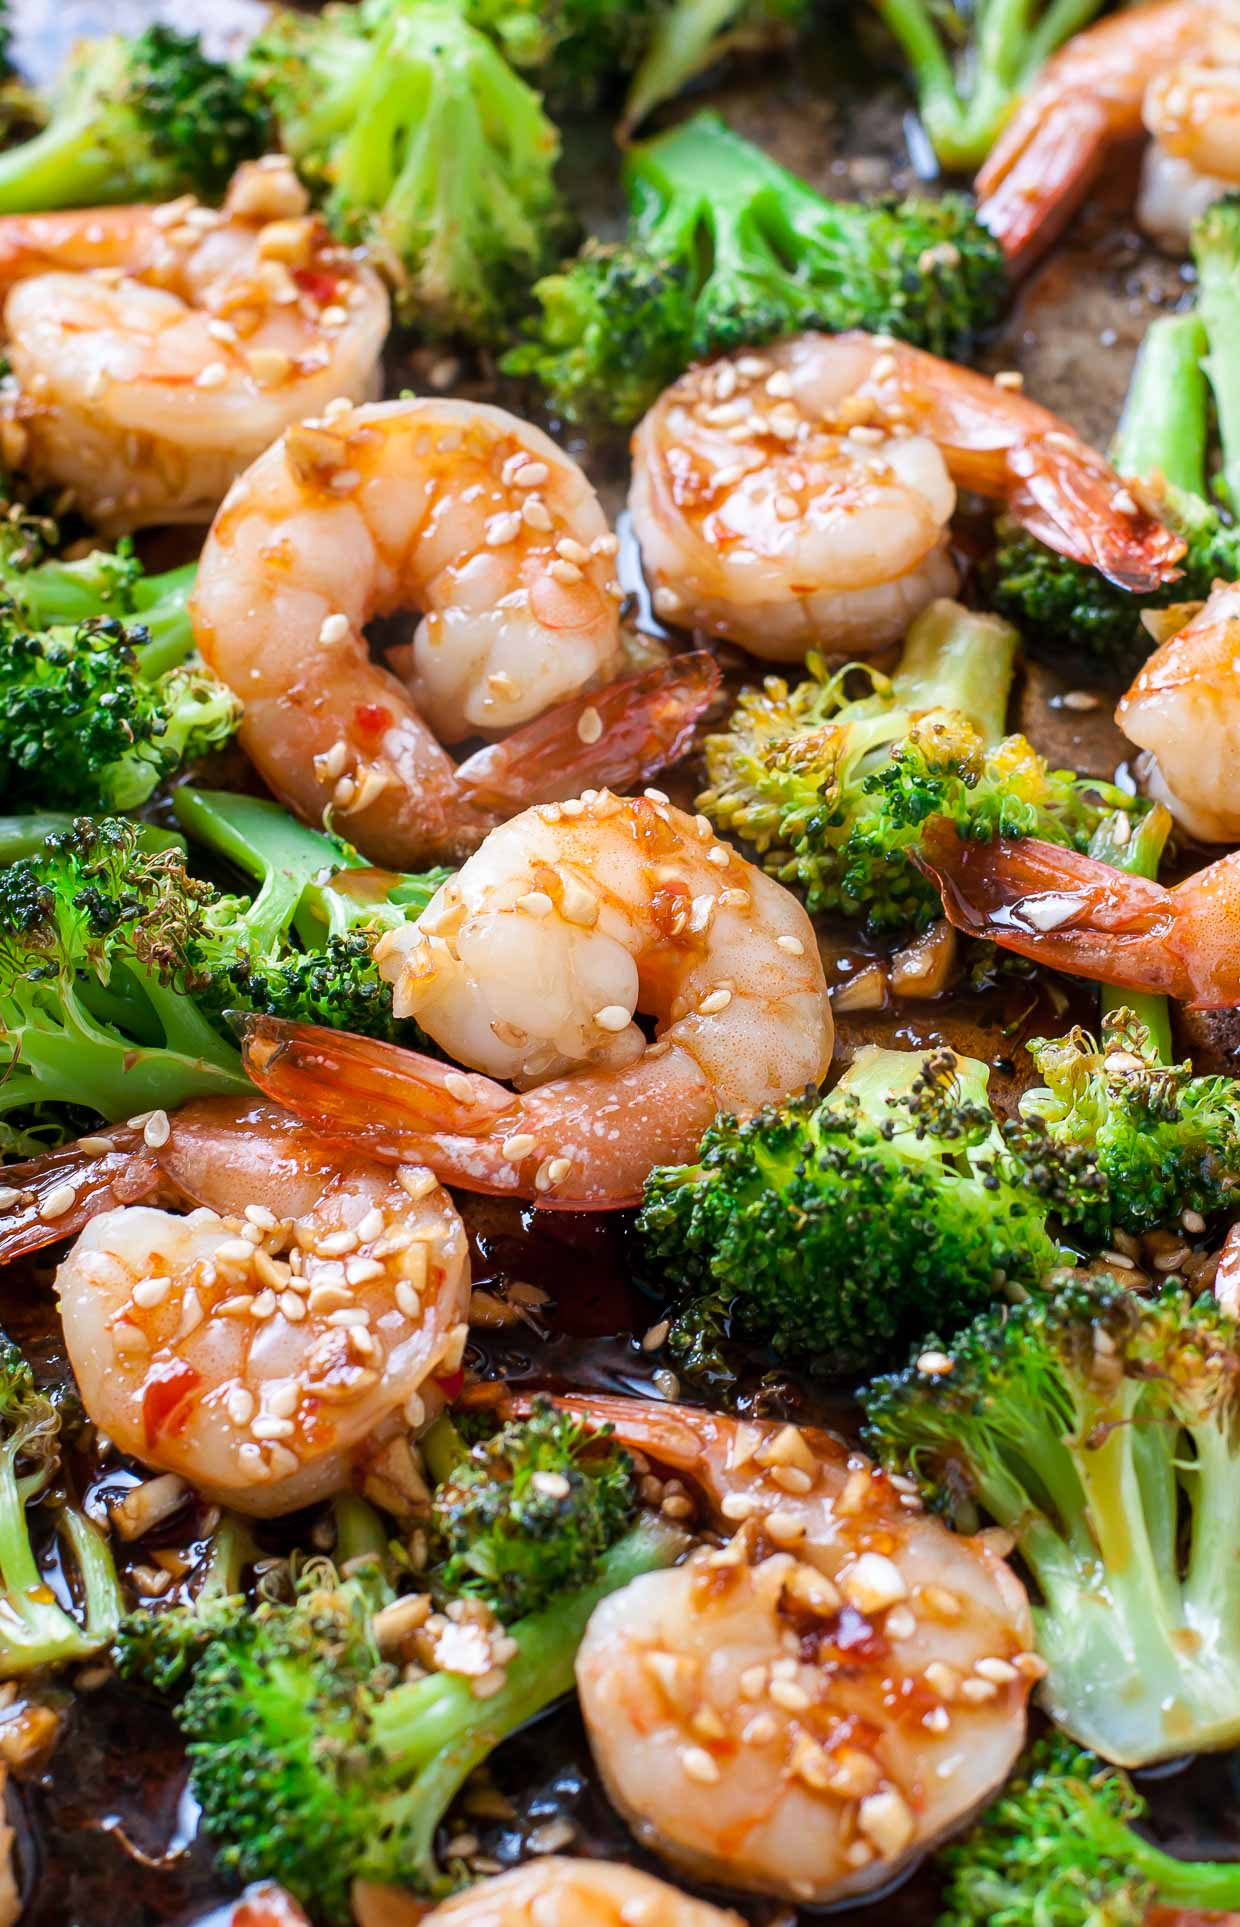 Flavorful roasted broccoli and tender, juicy shrimp join forces in this super easy Sheet Pan Roasted Honey Garlic Shrimp and Broccoli. This one pan wonder makes a great fuss-free weeknight dinner!